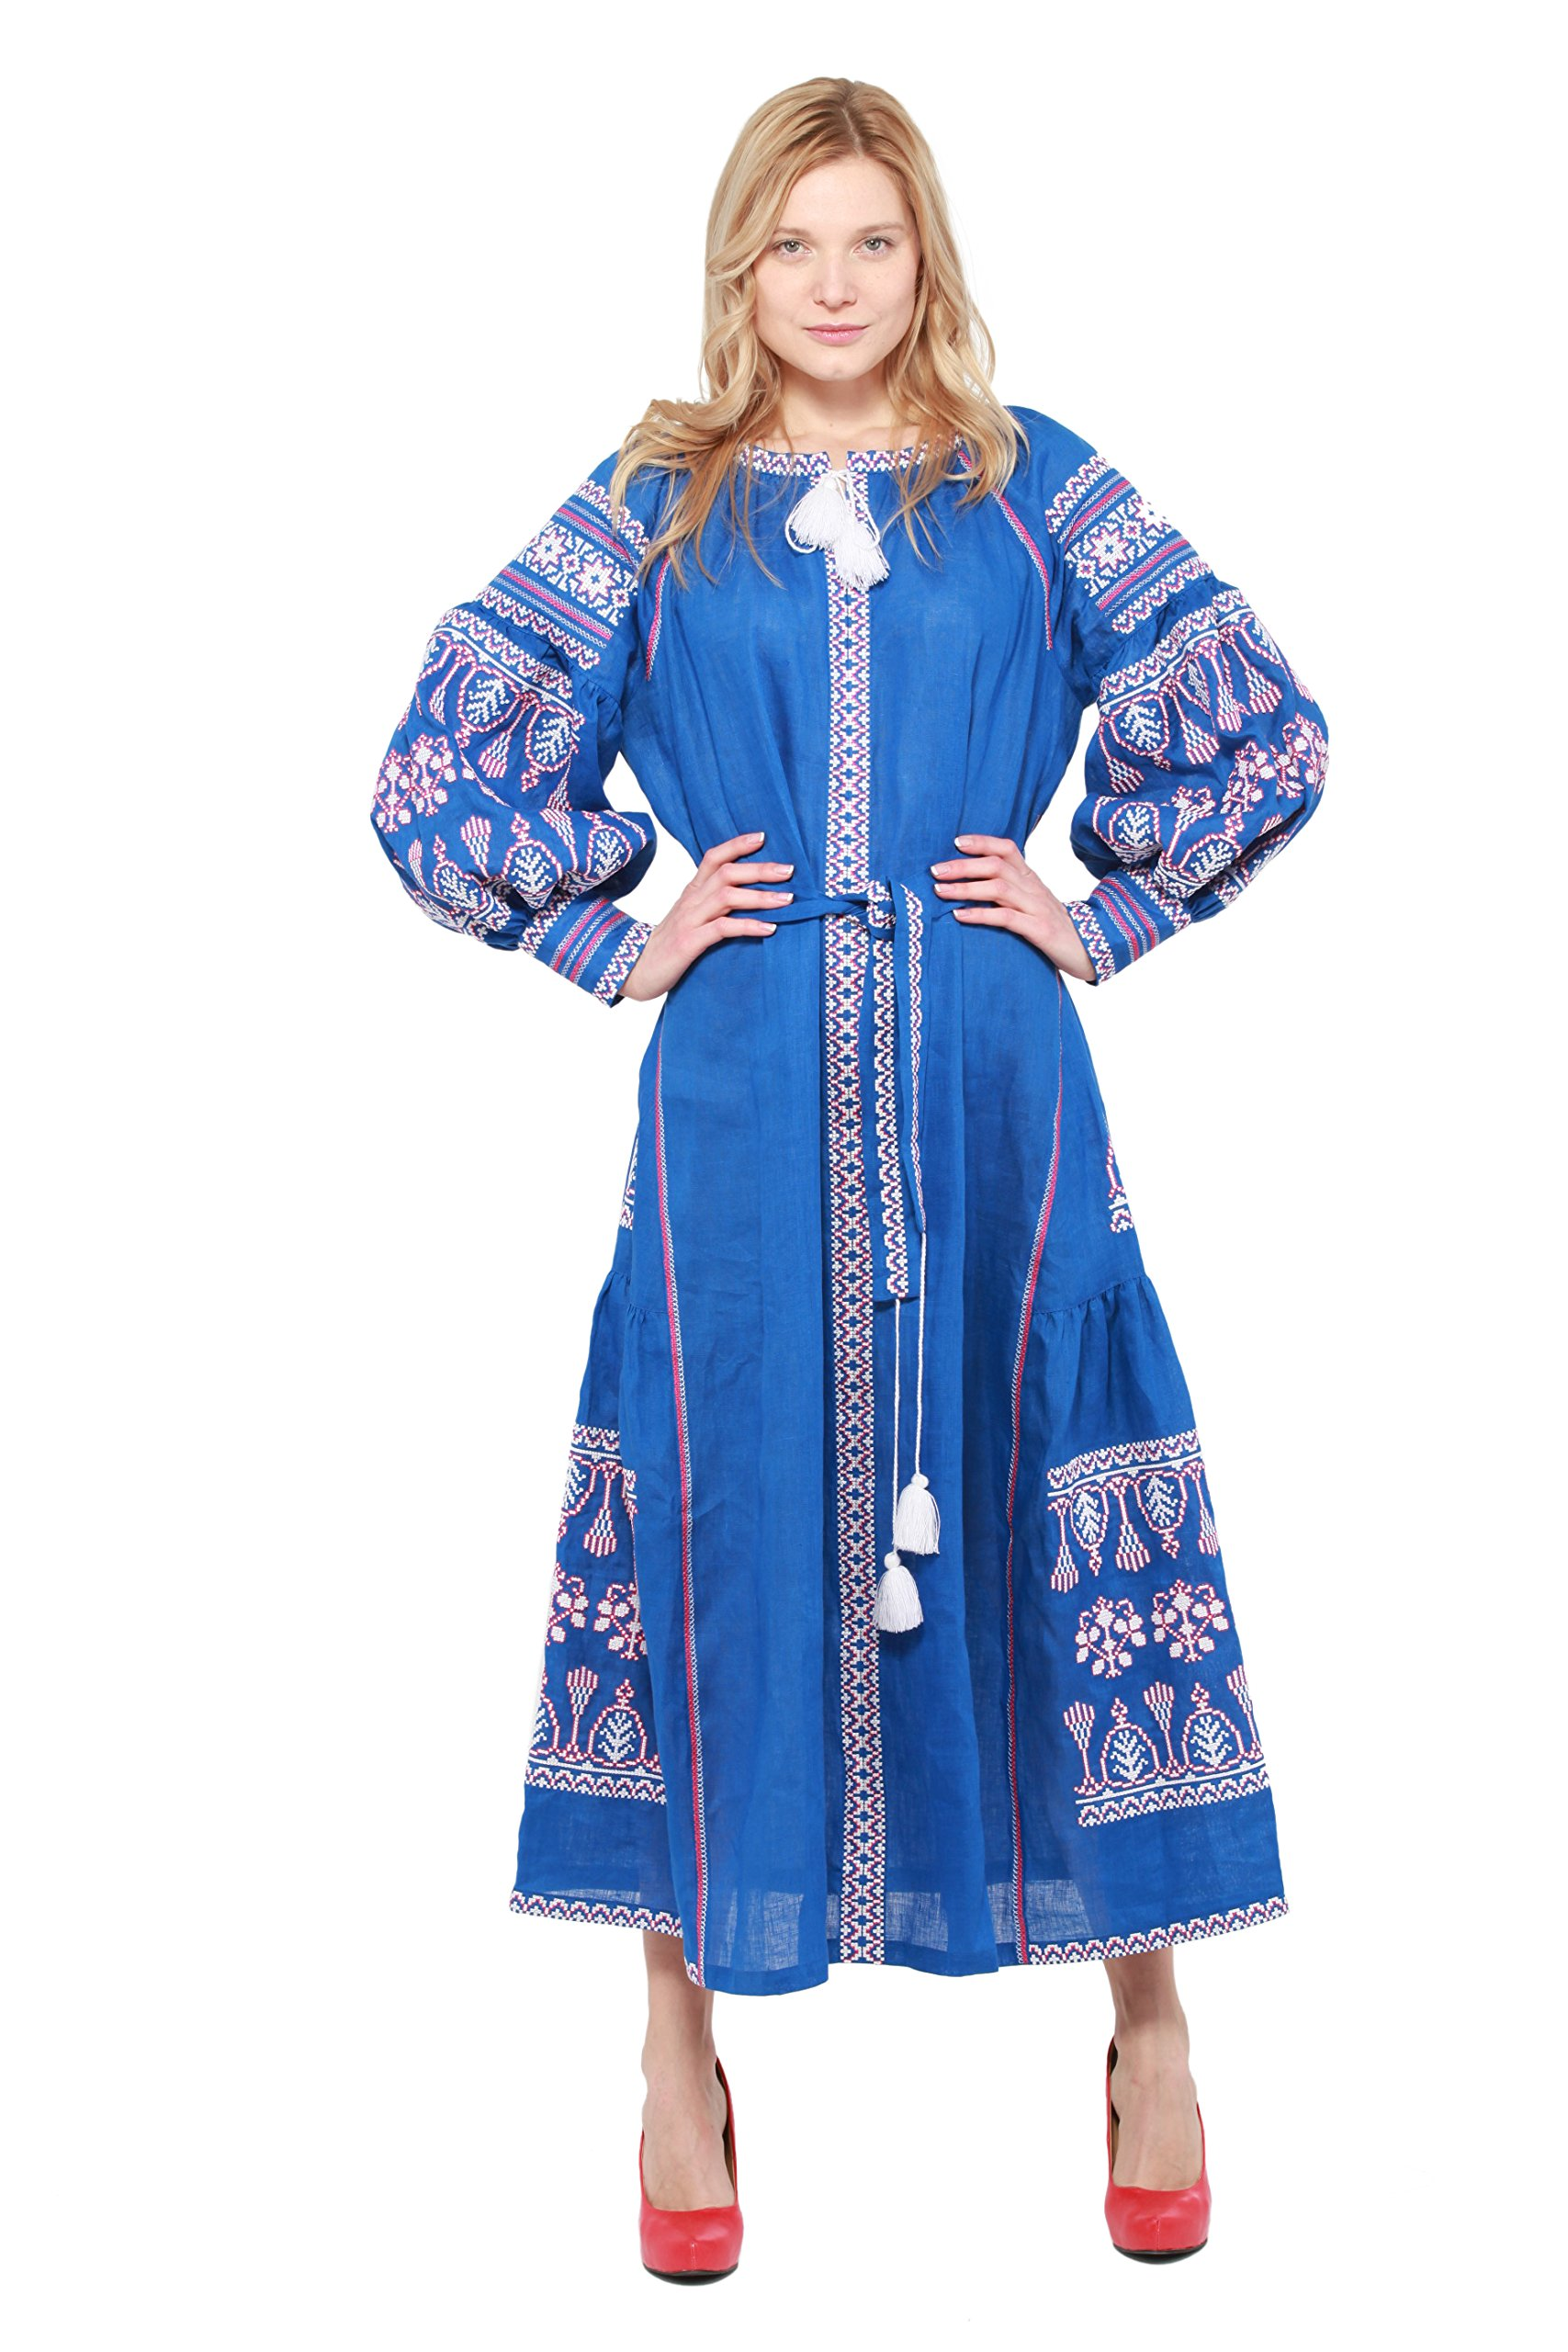 Boho Style Dress Embroidered Long Dress blue woman. Vyshyvanka Ukrainian (XXL, 140cm) by Boho Style Dress